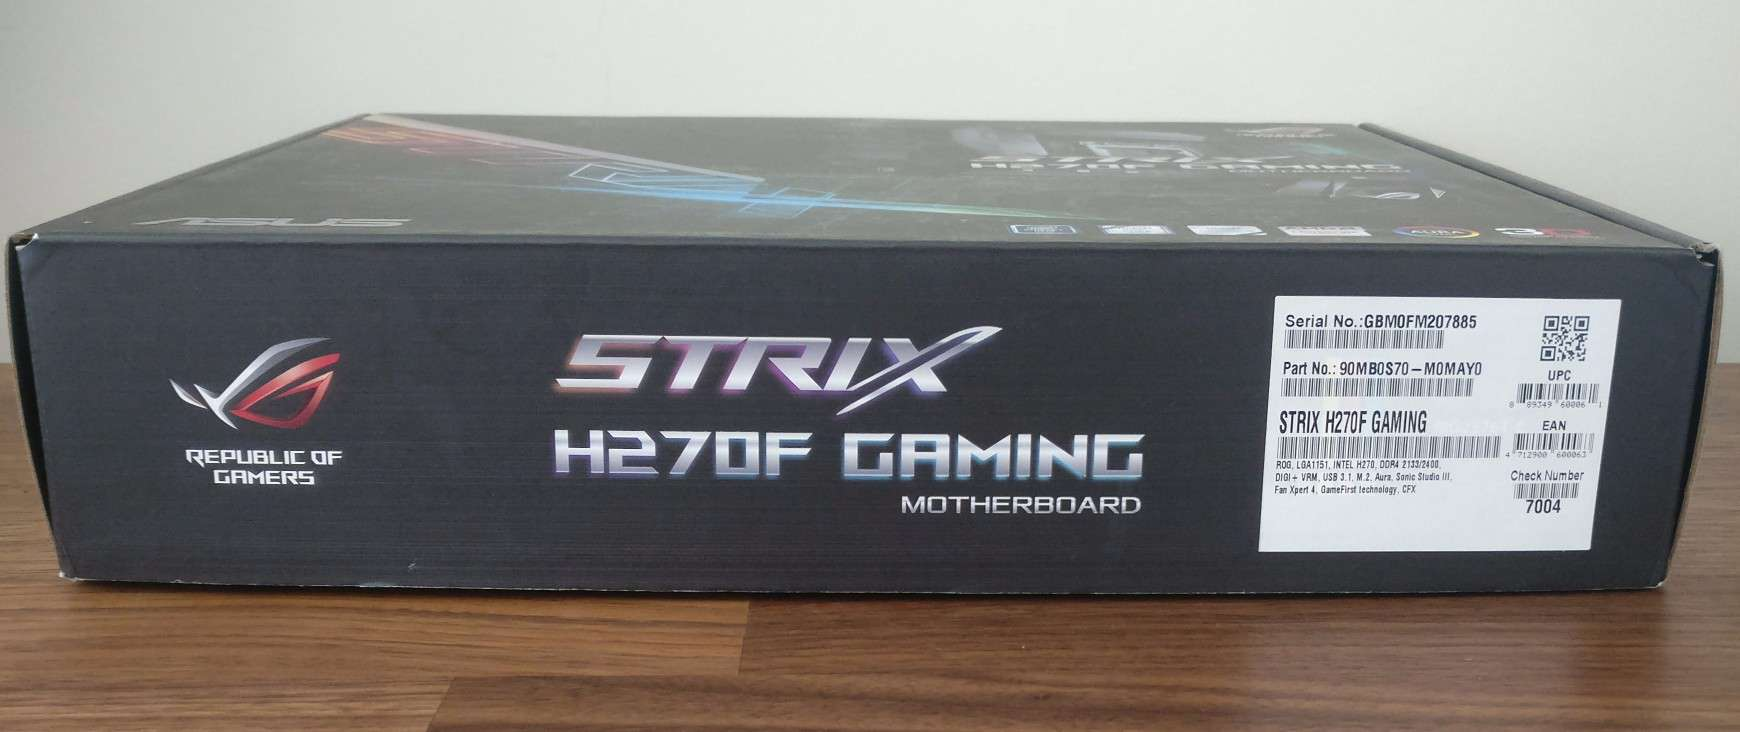 Asus-Strix-Motherboard-Photos-04 Asus Strix H270F ROG Gaming Motherboard Review